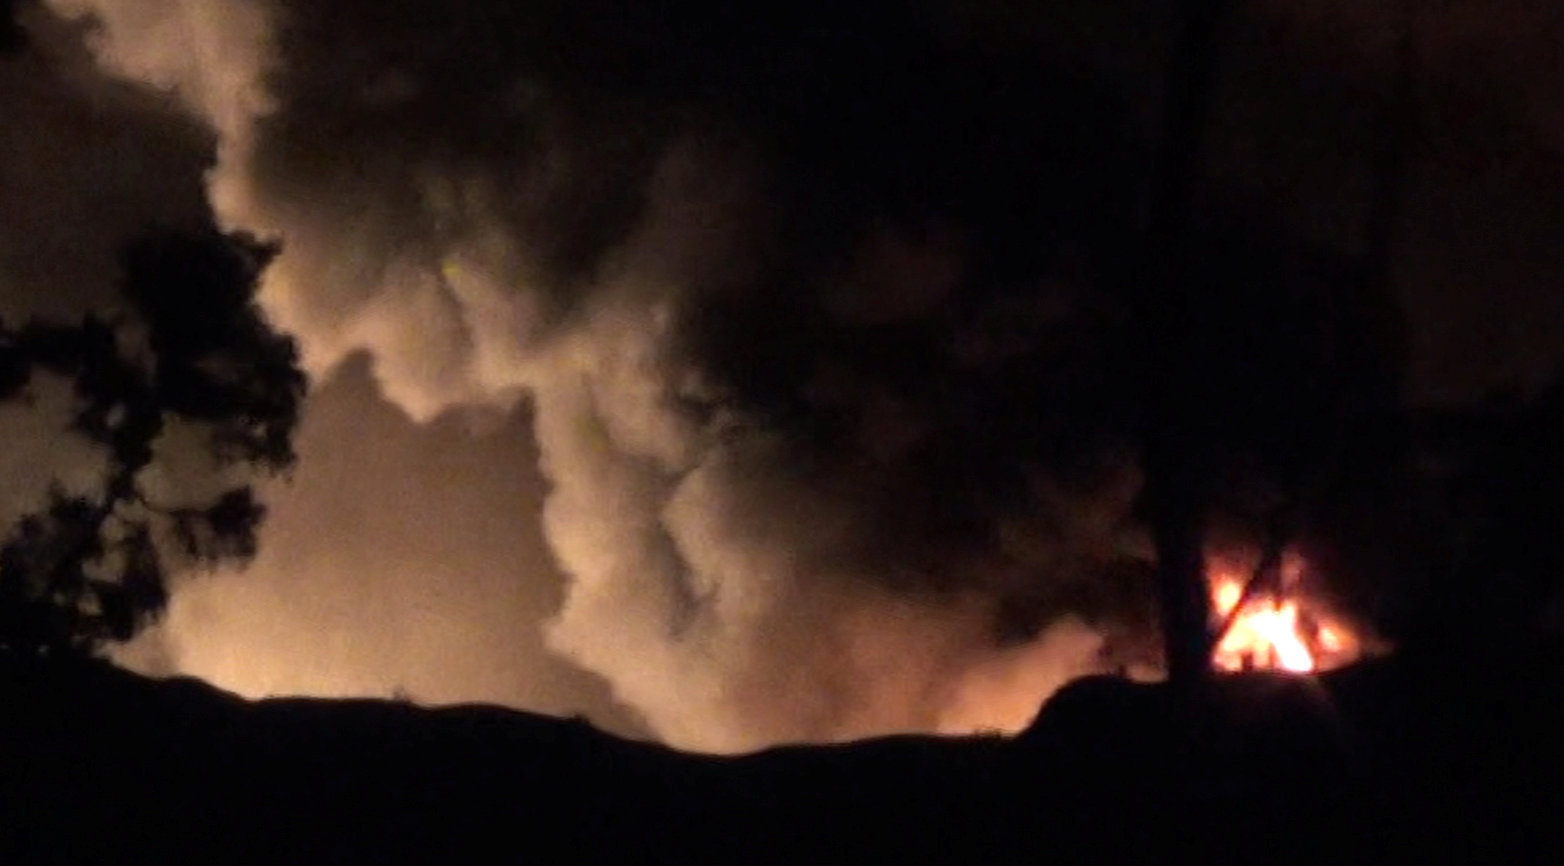 Smoke and flames are seen near Mezzah military airport, near Damascus, Syria, in this still image from video obtained by Reuters January 13, 2017